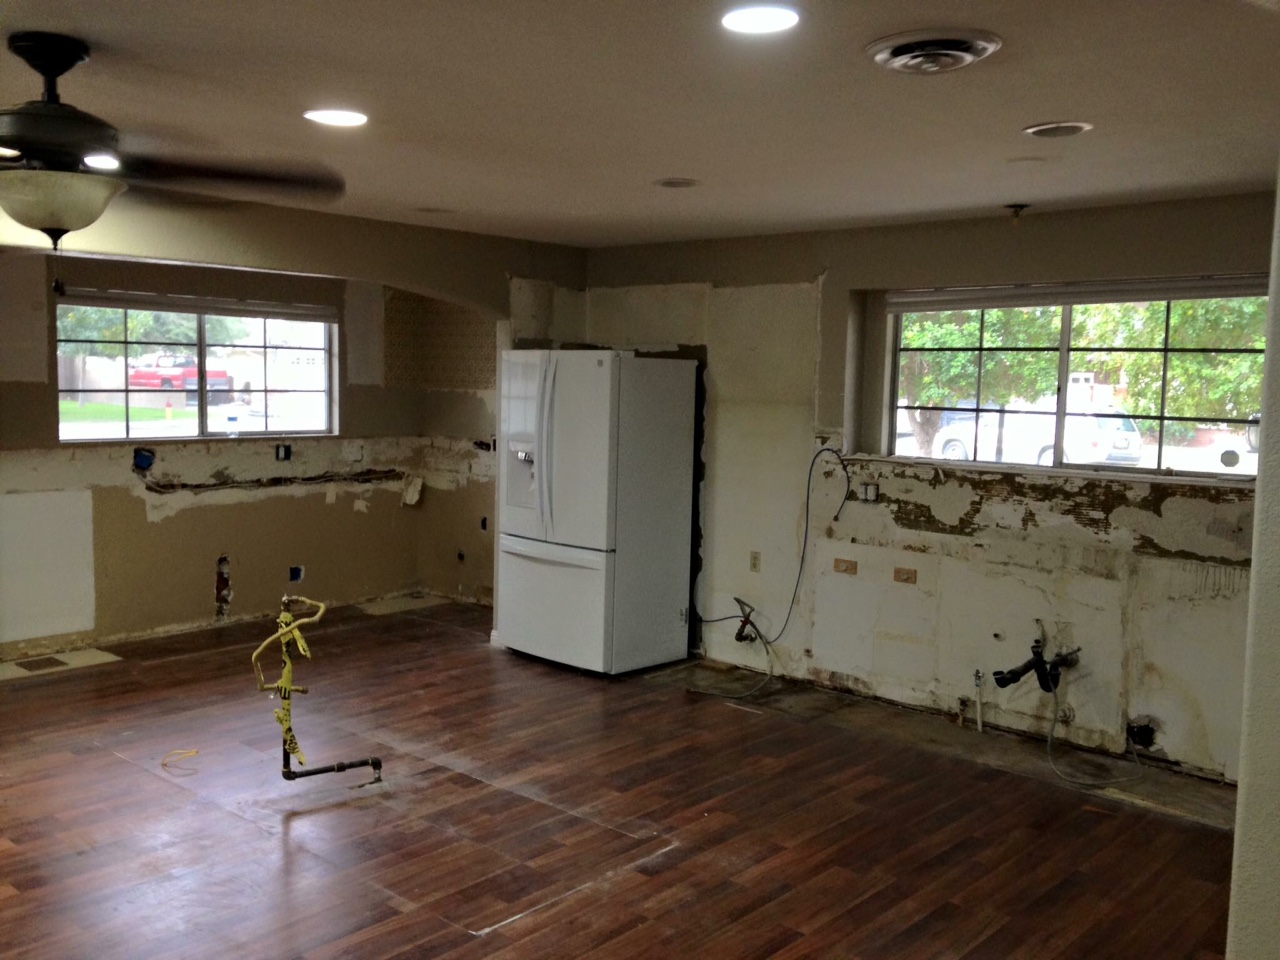 A s general home repair woodridge illinois il Kitchen and bath design center near me